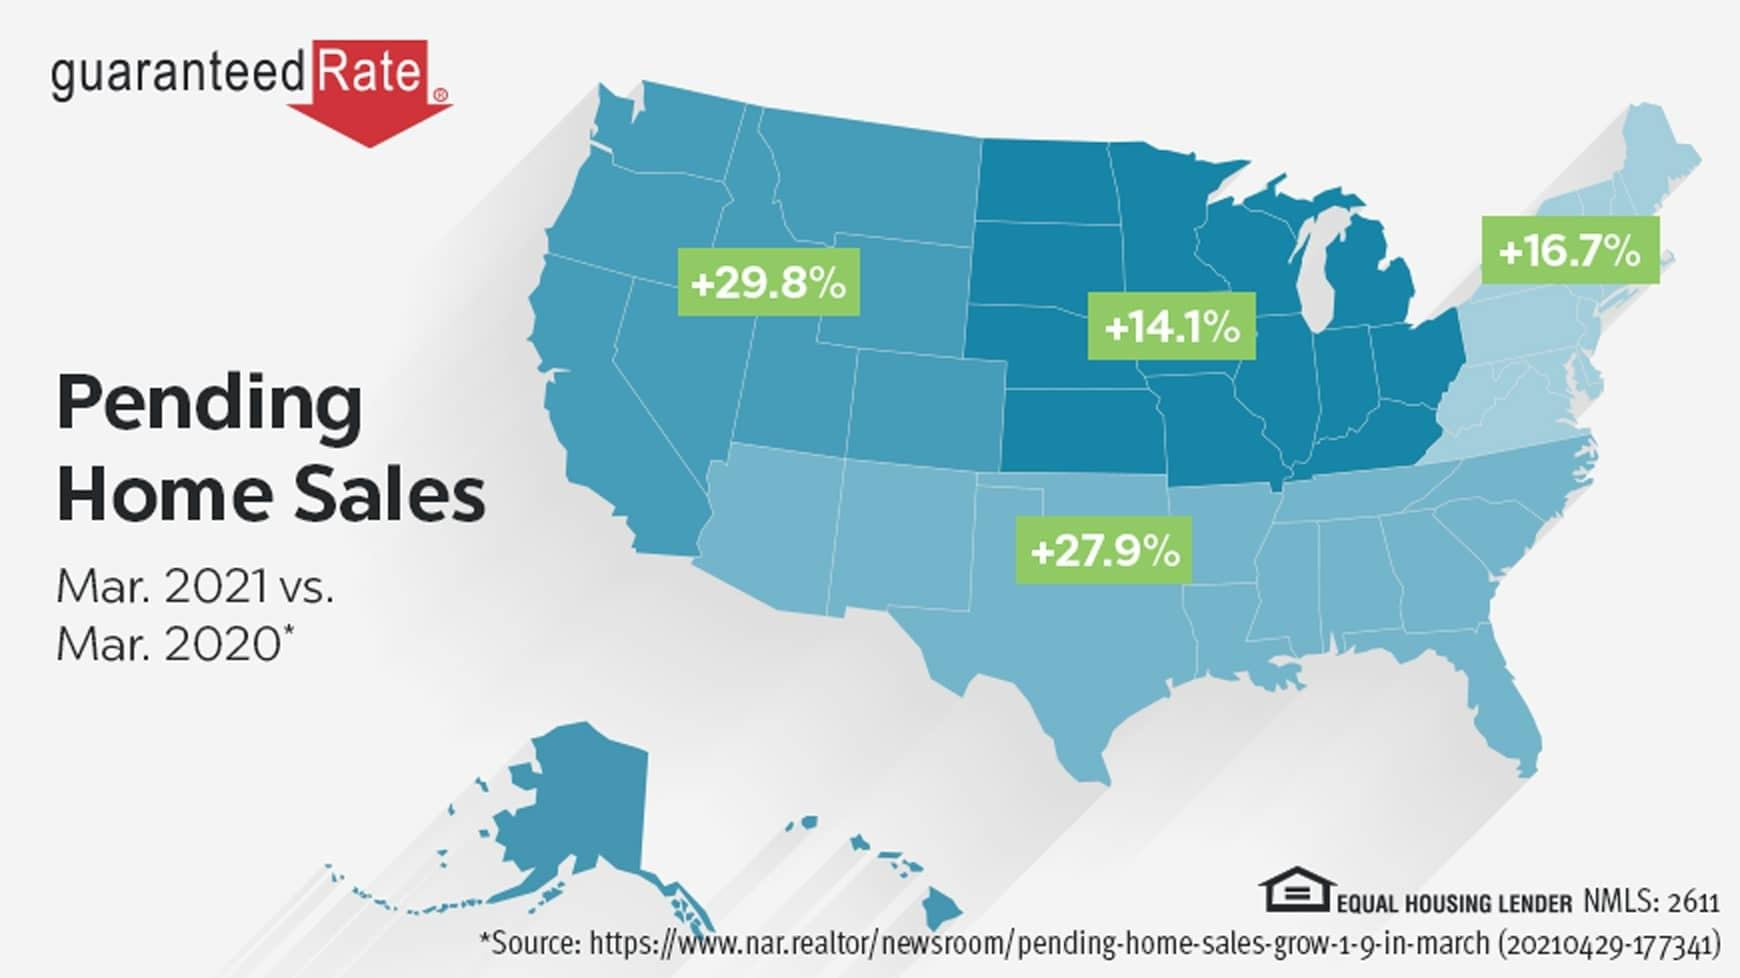 Housing Report: March brings growth to pending home sales